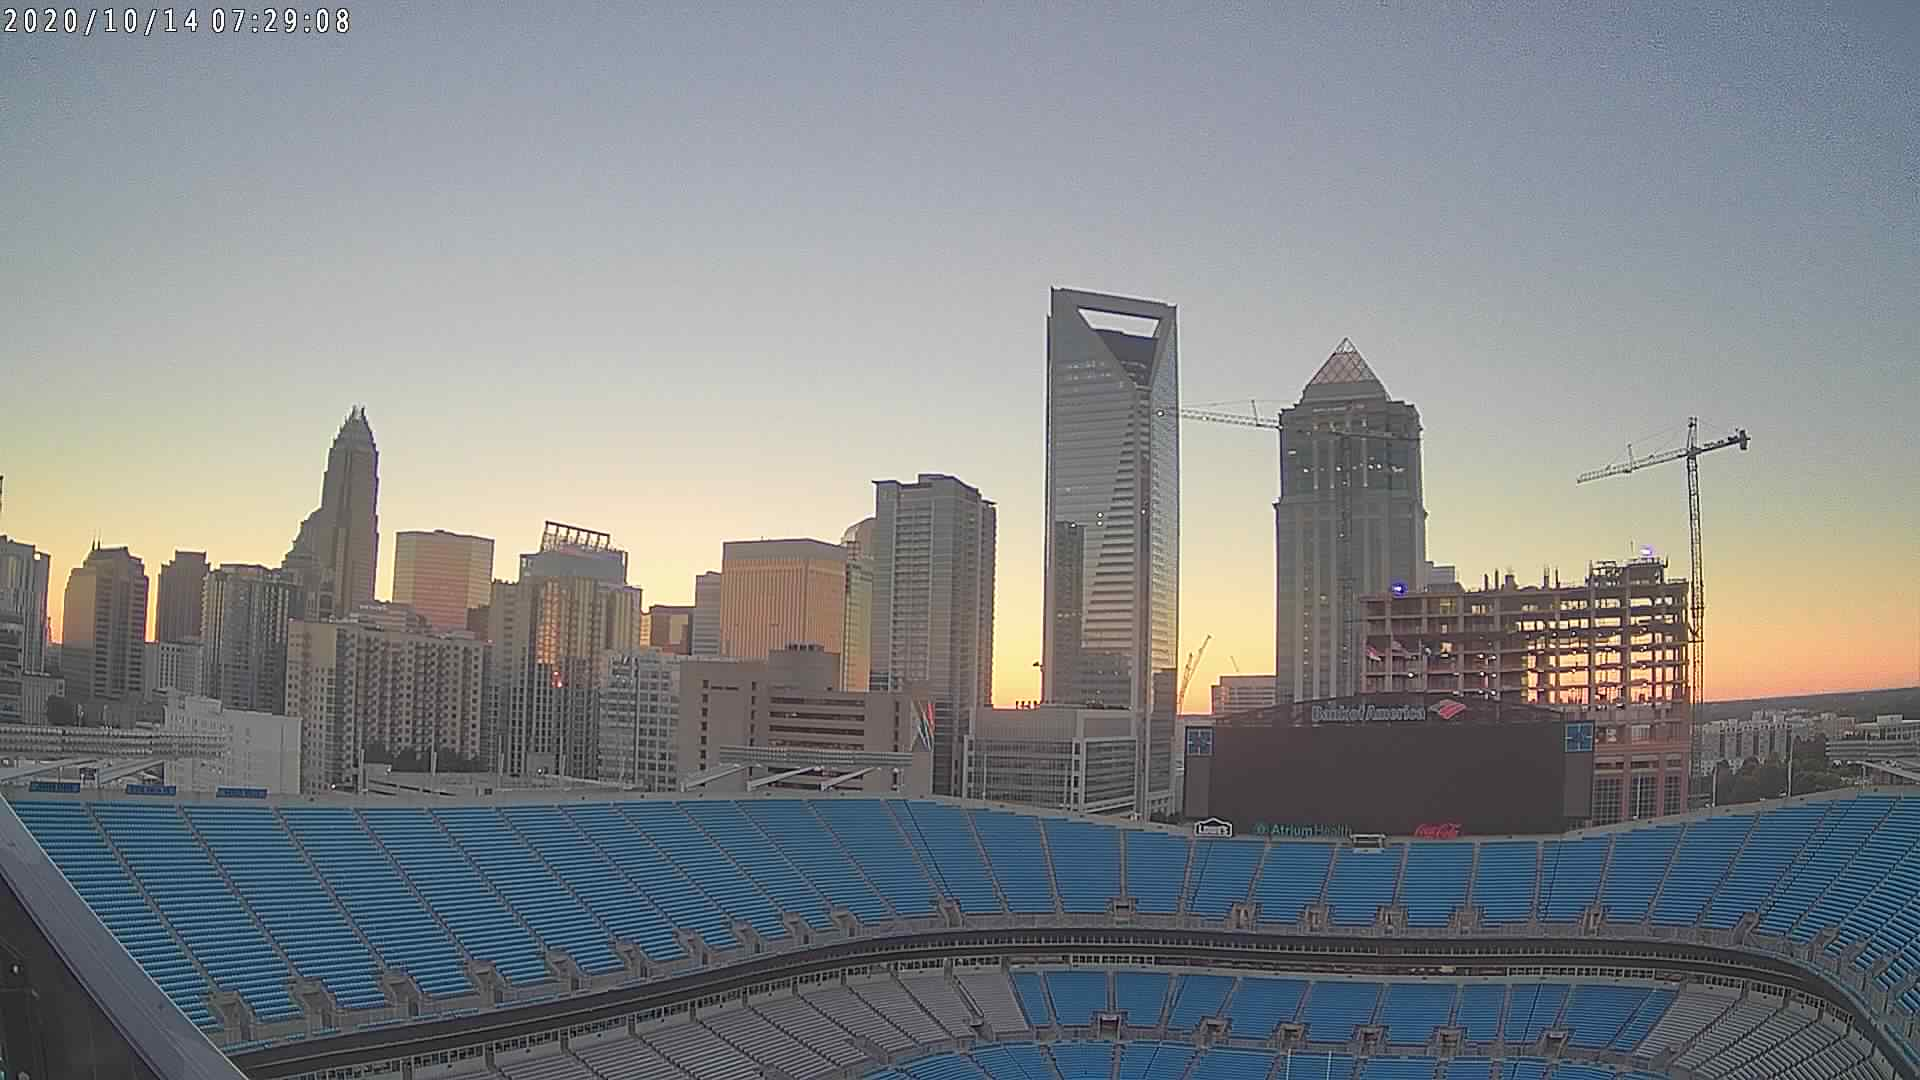 Bank of America Stadium uses high-tech weather station to keep fans, players safe